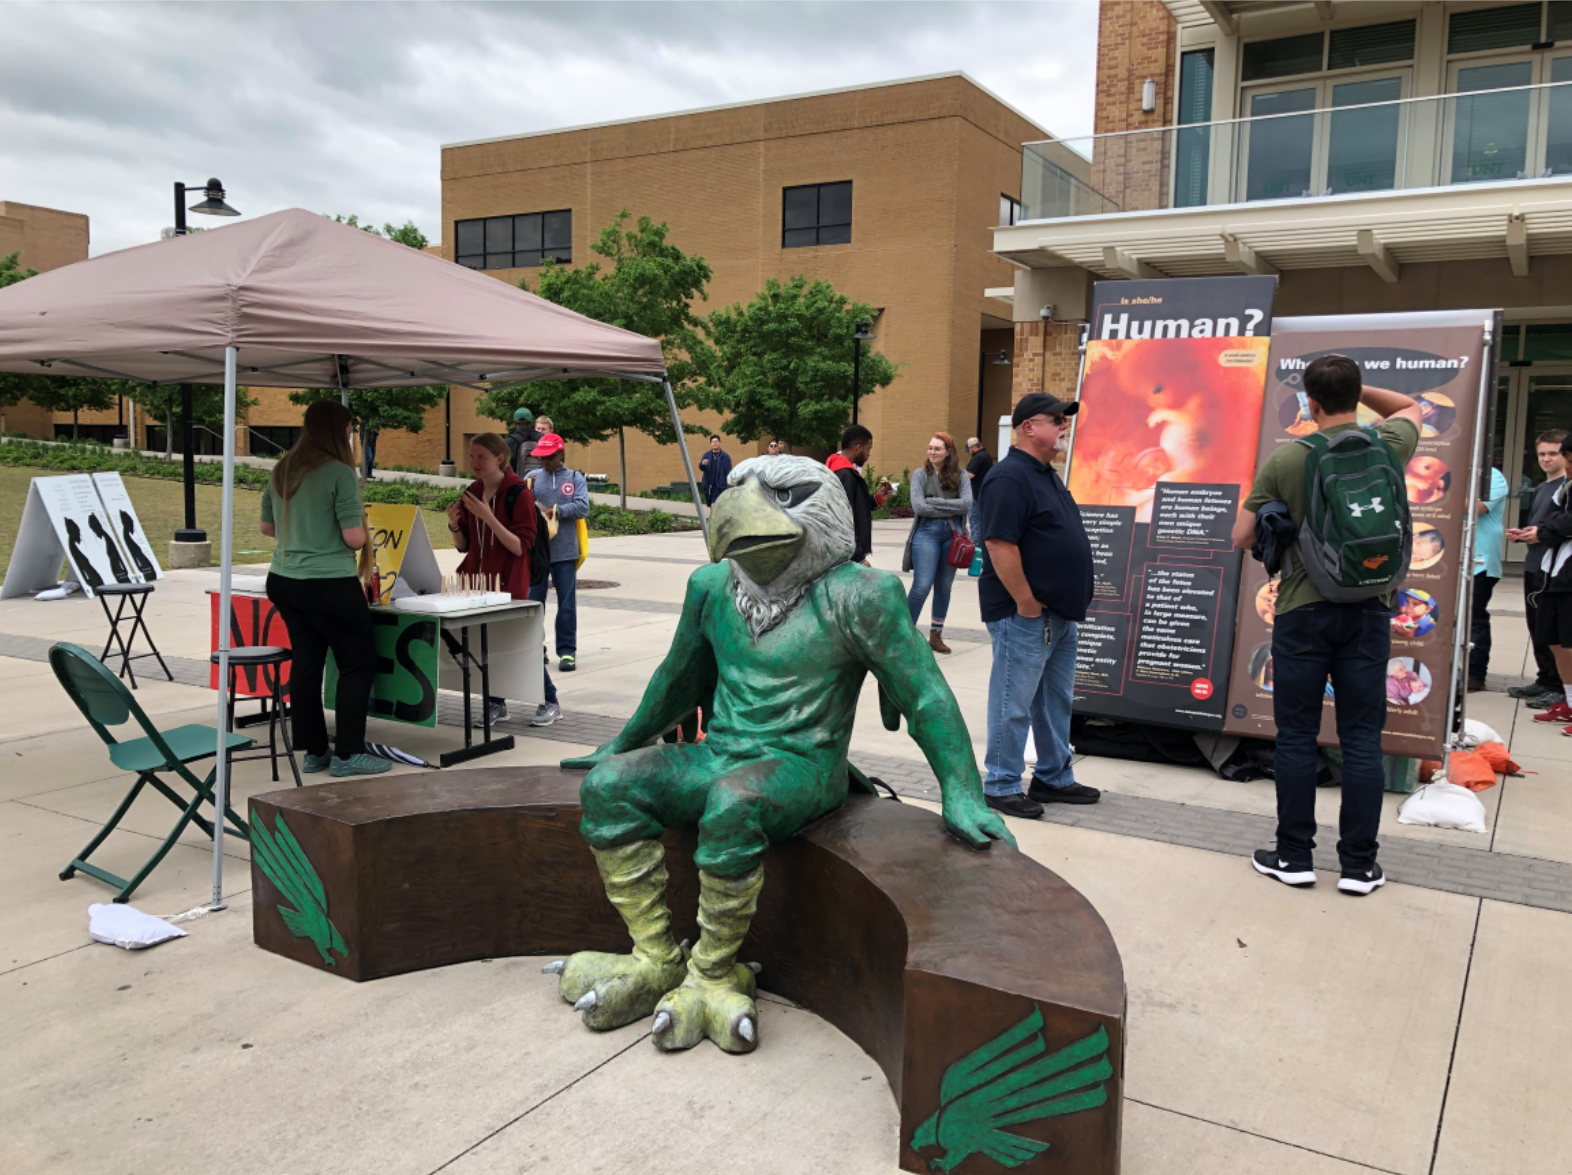 Our staff and volunteers had lots of great conversations at the University of North Texas this spring.